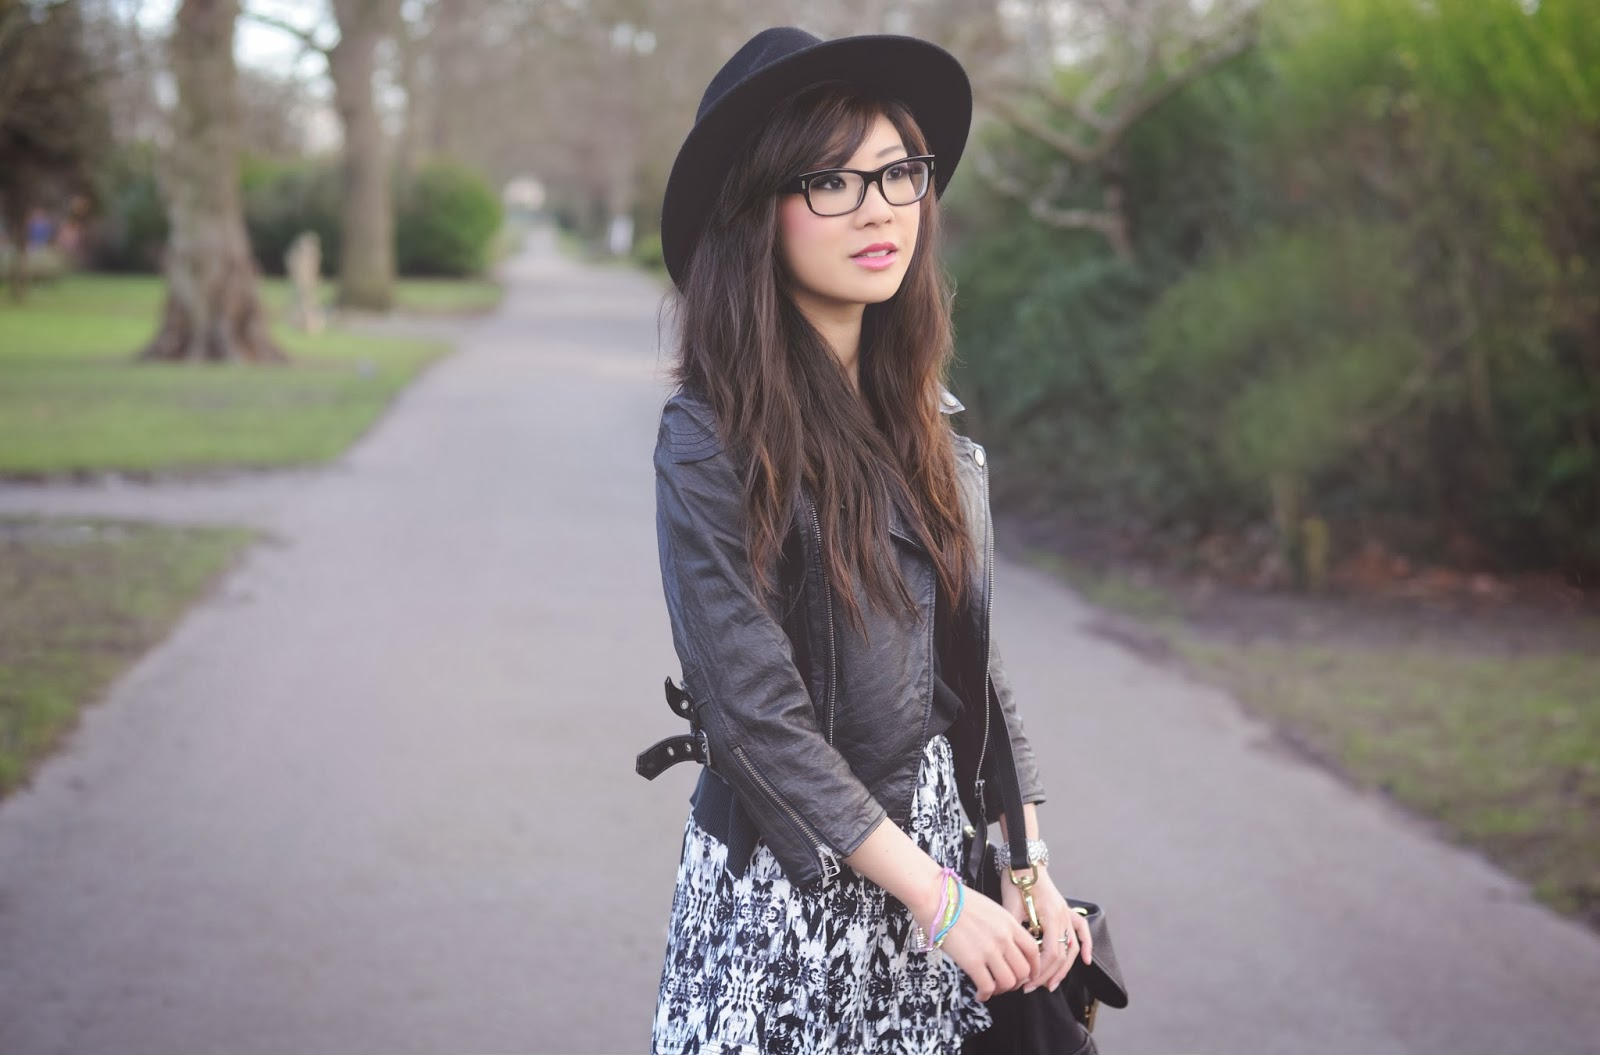 uk fashion blogger, uk style blogger, how to wear the monochrome trend